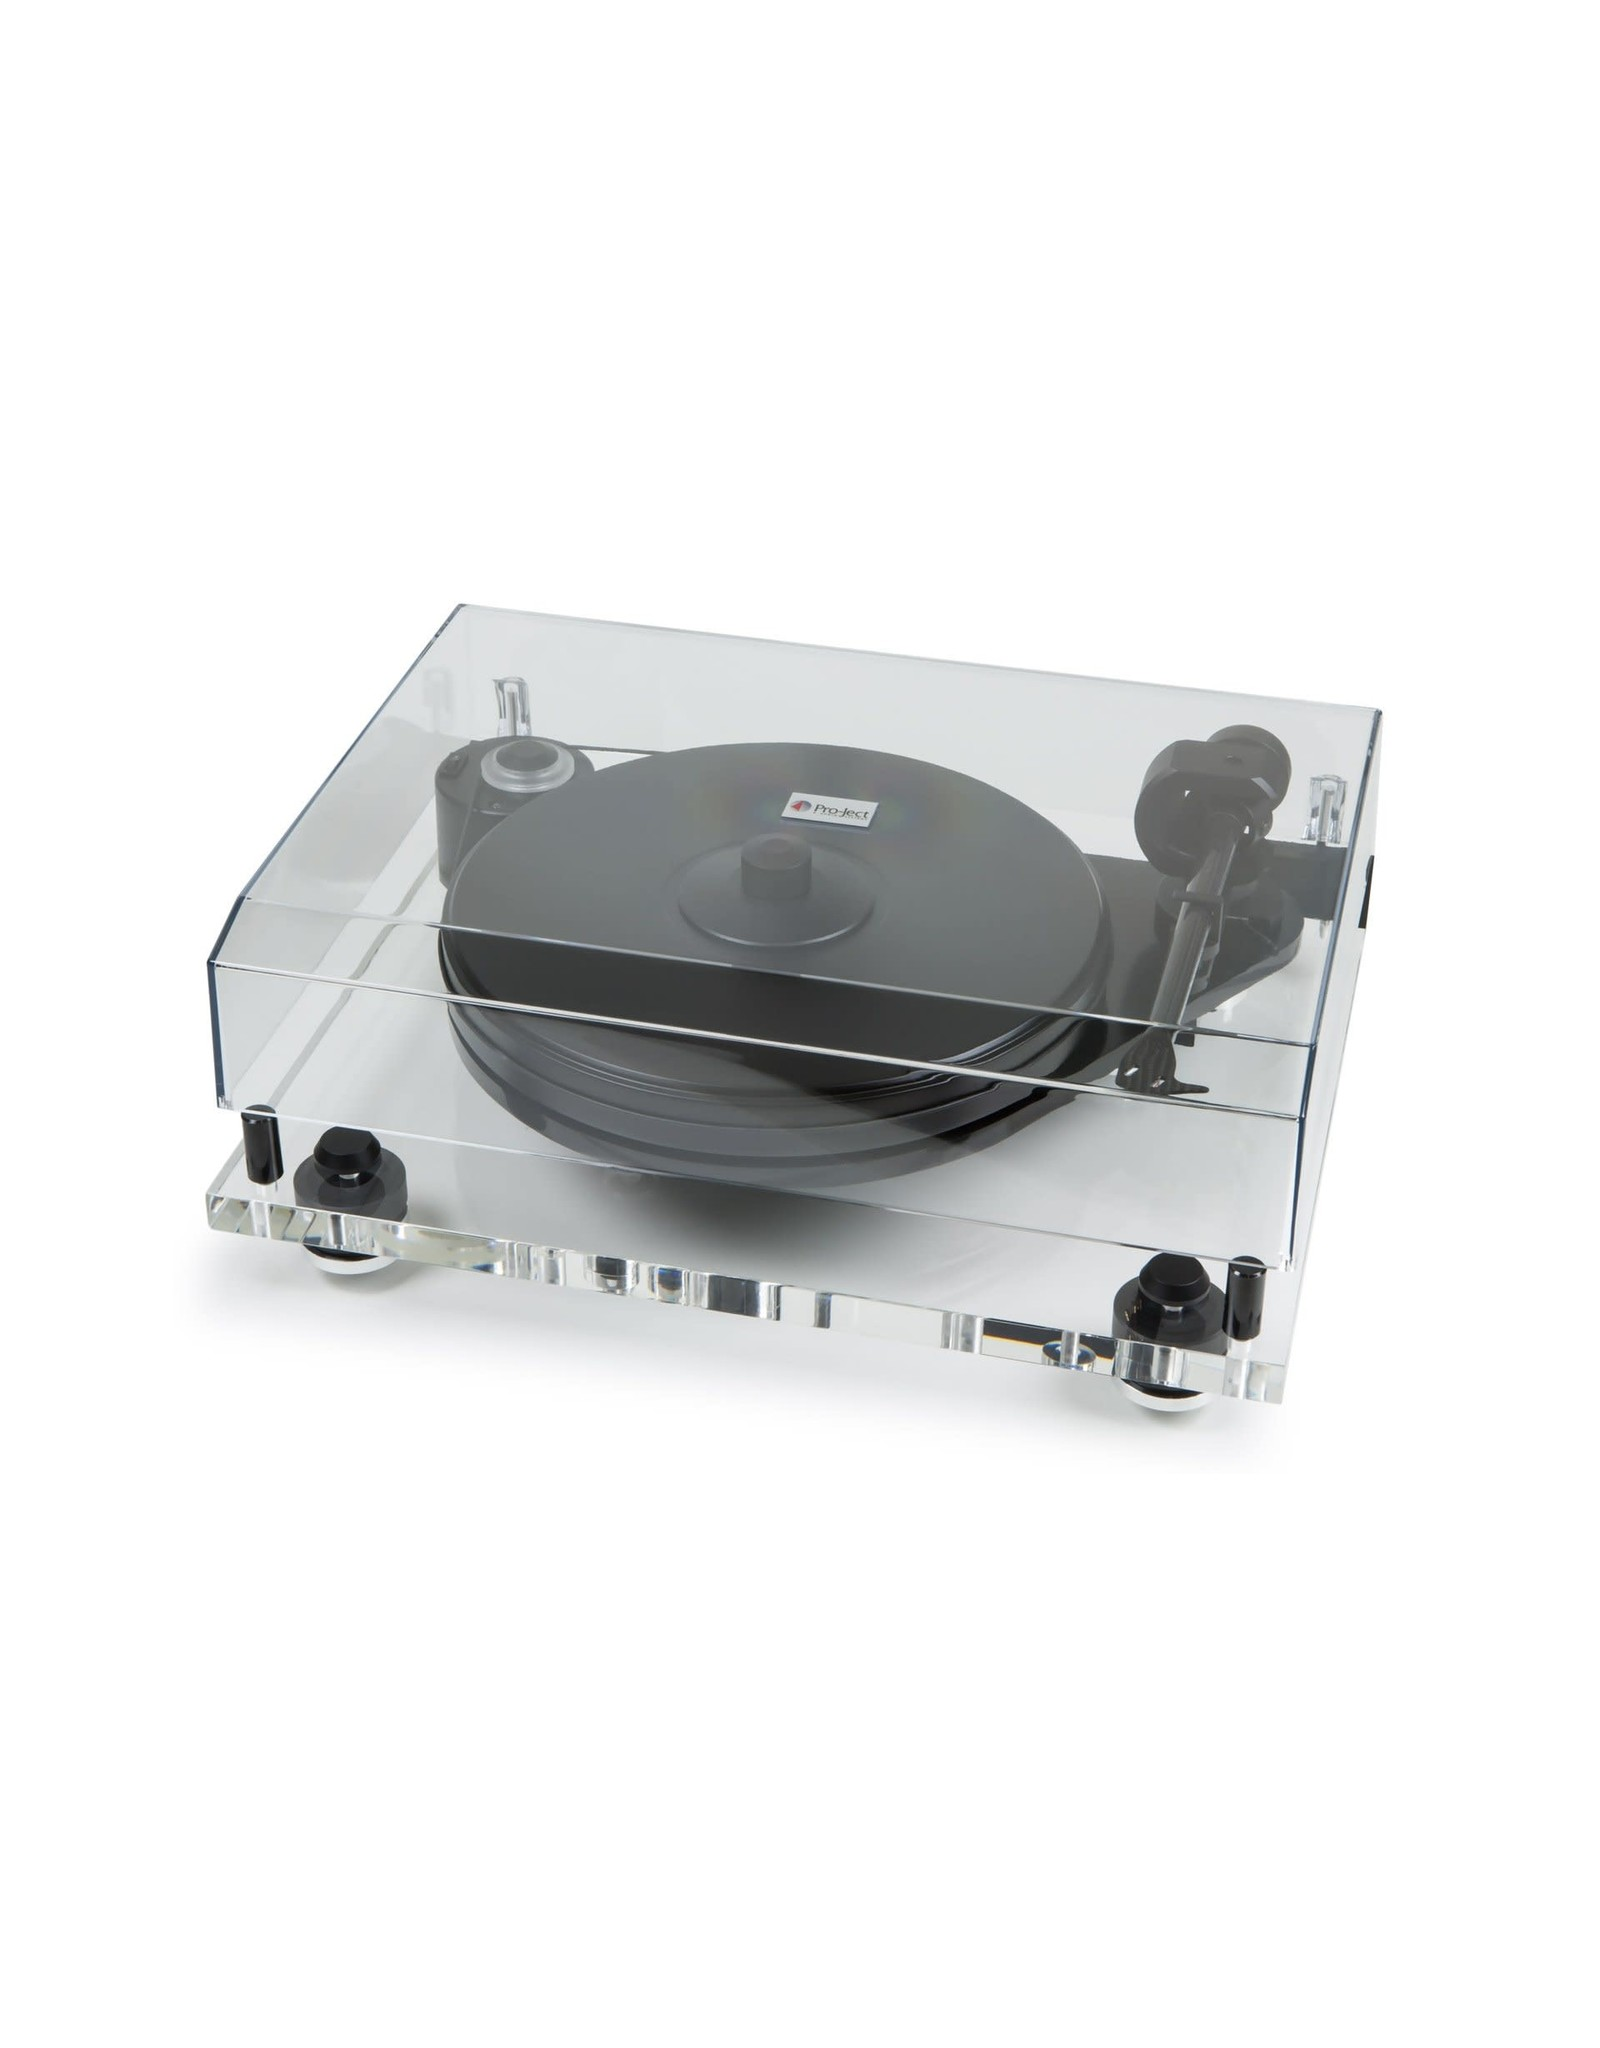 Pro-Ject Pro-Ject 6PerspeX SB Turntable